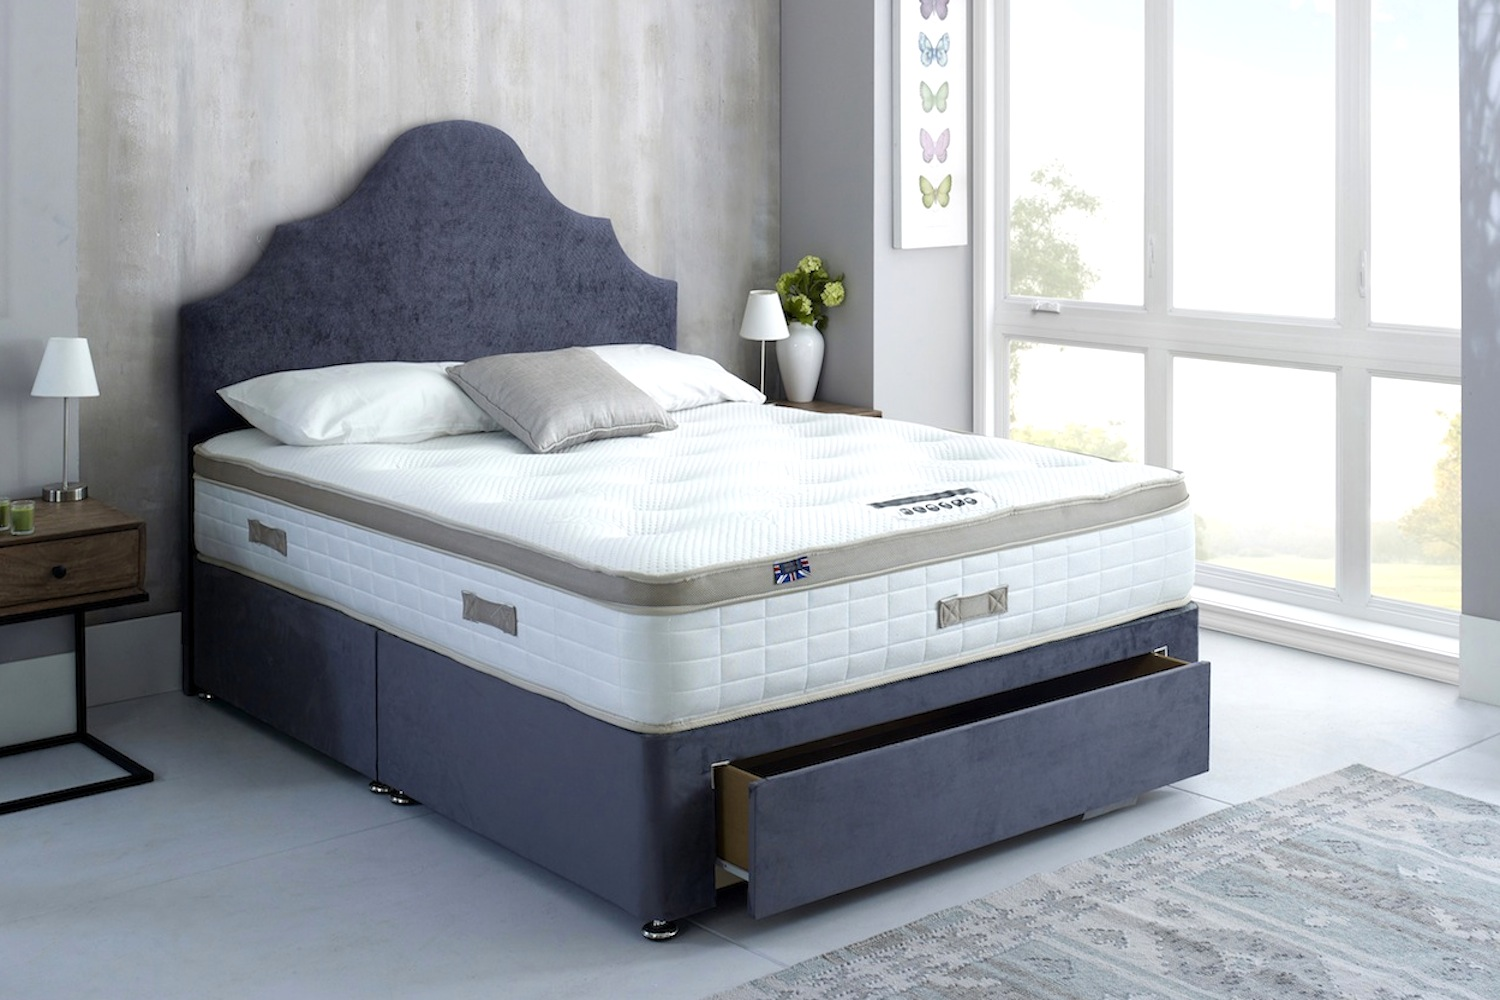 MEMORY FOAM DIVAN BED WITH MATTRESS AND HEADBOARD NEW OTTOMAN OPTION AVAILIABLE